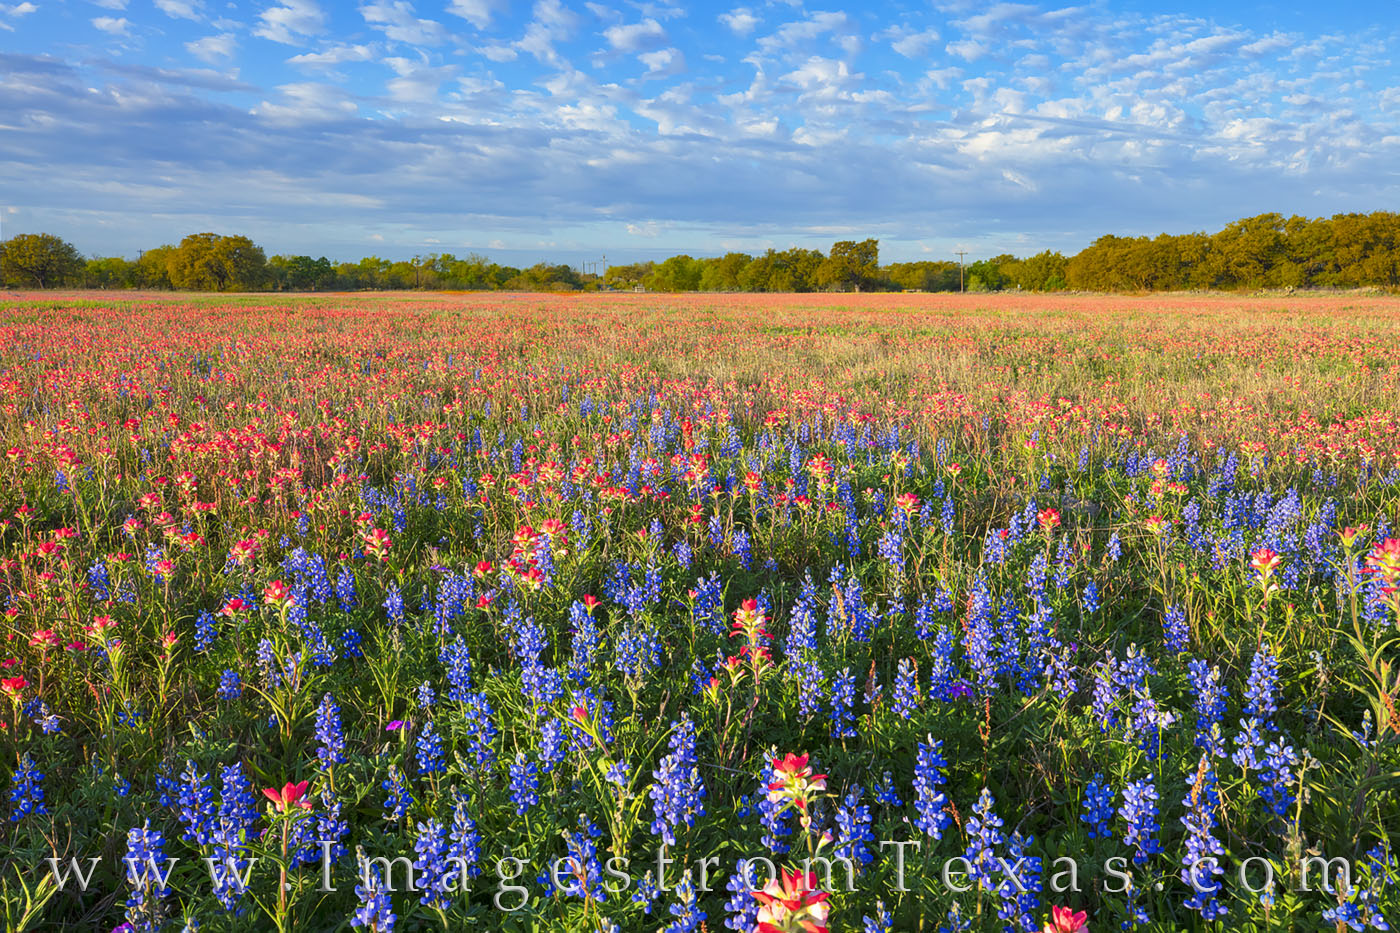 wildflowers, bluebonnets, indian paintbrush, texas flowers, bloom, superbloom, morning, poteet, atascosa county, south texas, photo